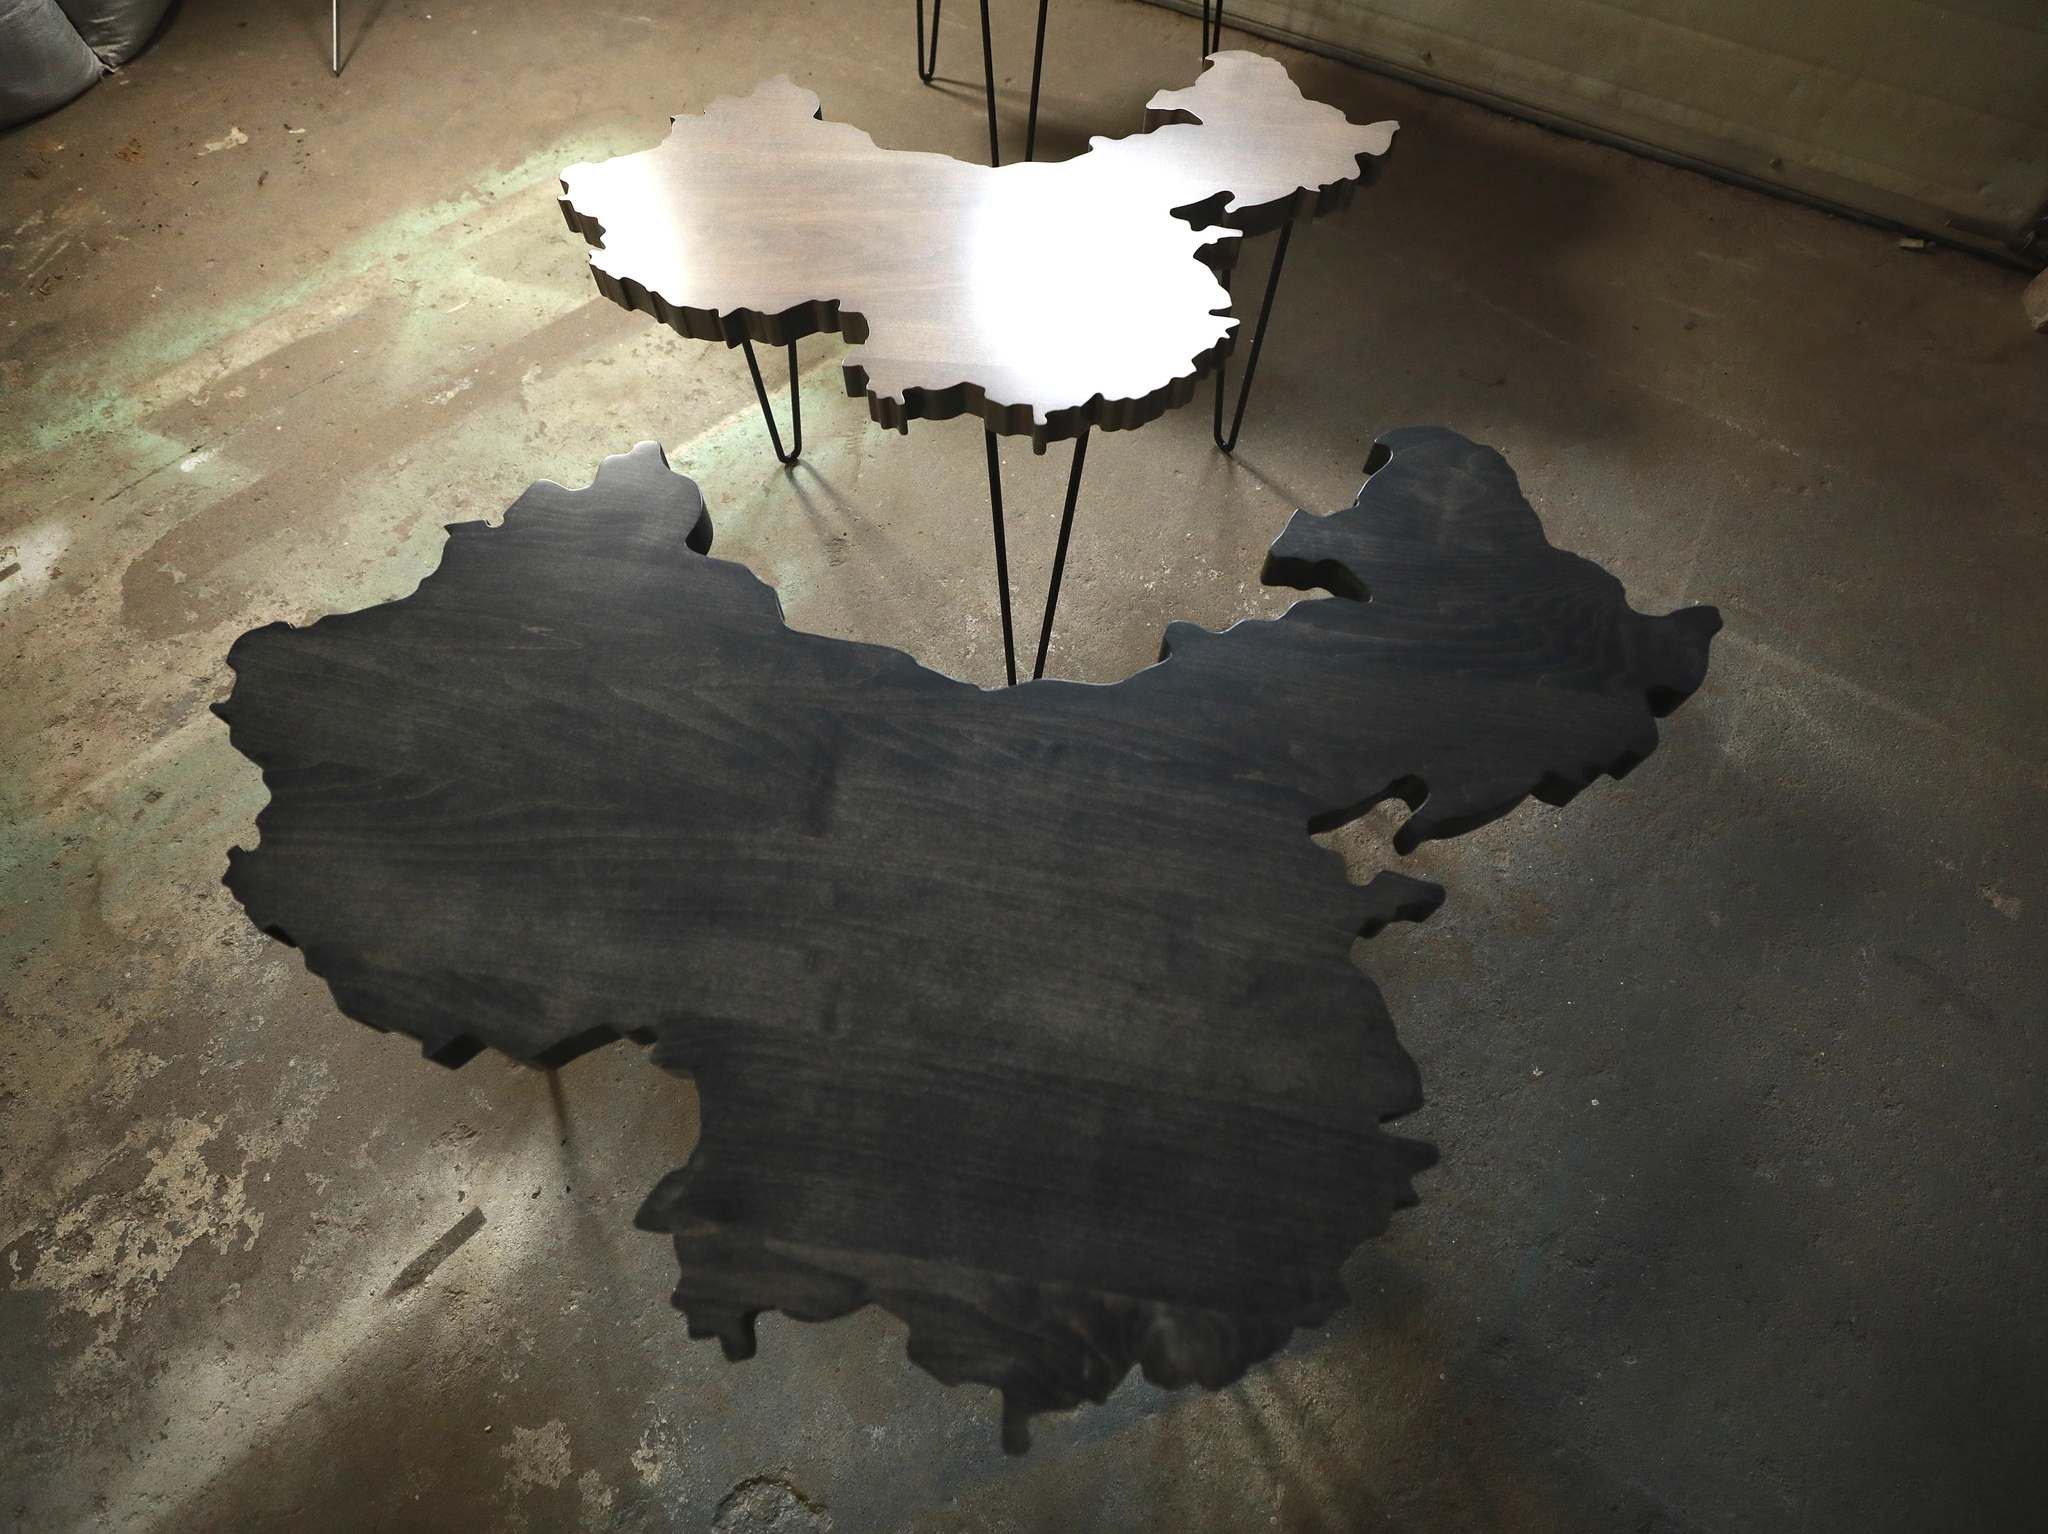 Tables in the shape of China.